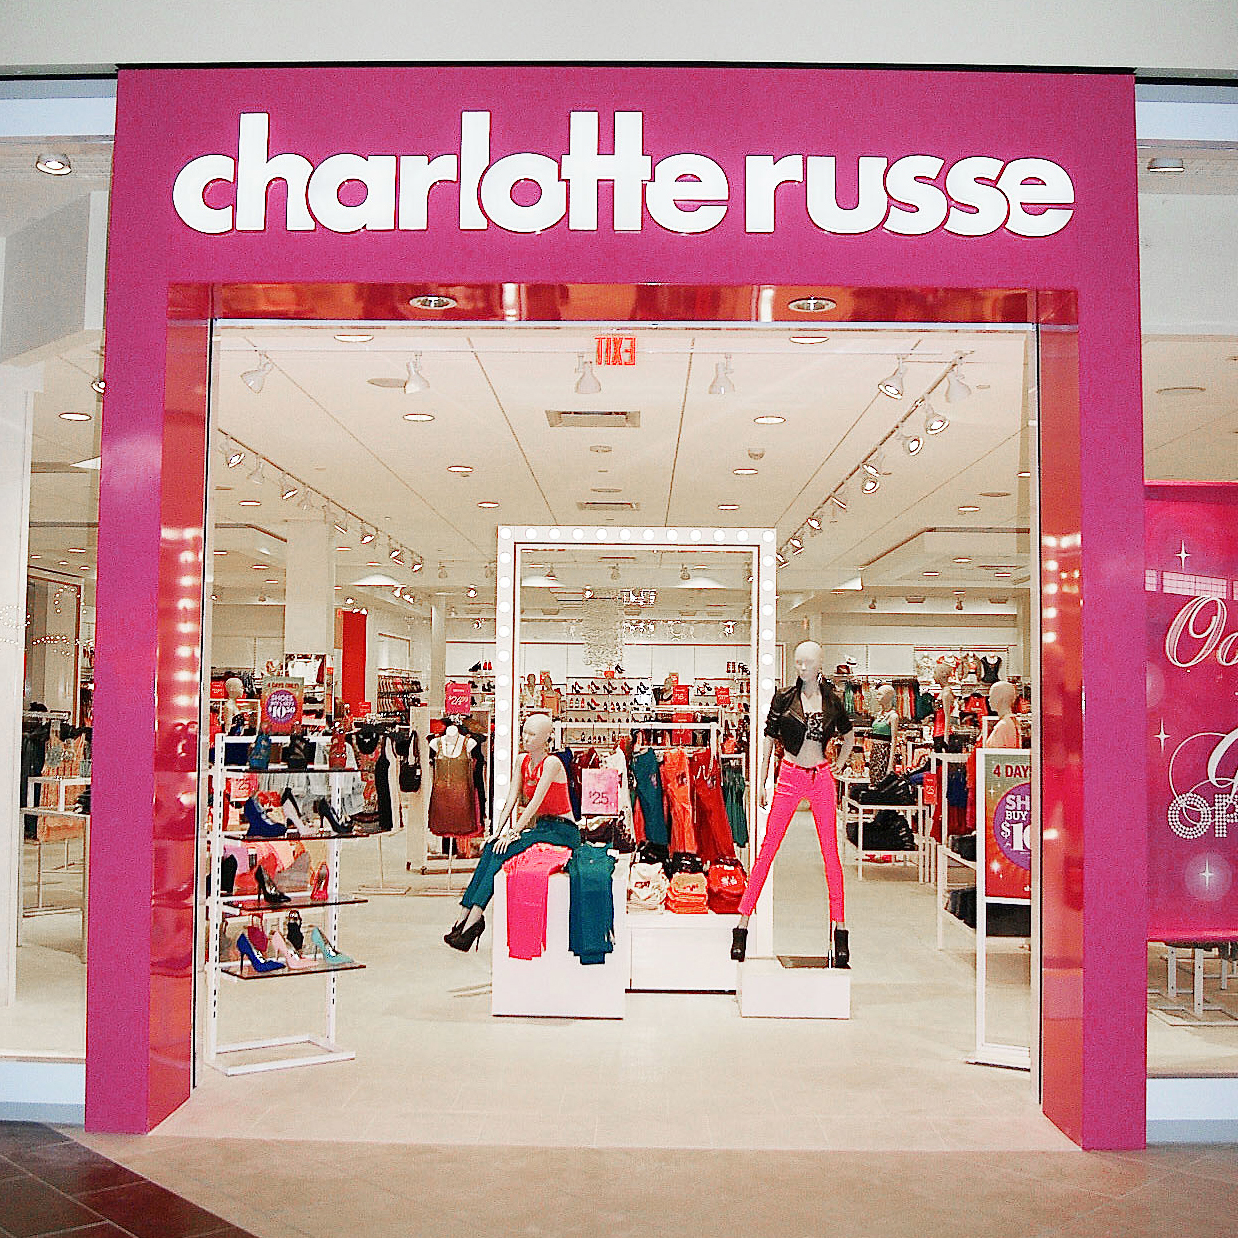 Charlotte Russe is among several retail chains that have struggled amid rapid changes in shopping habits, including more sales made online rather than in traditional malls. Photo: Wikimedia